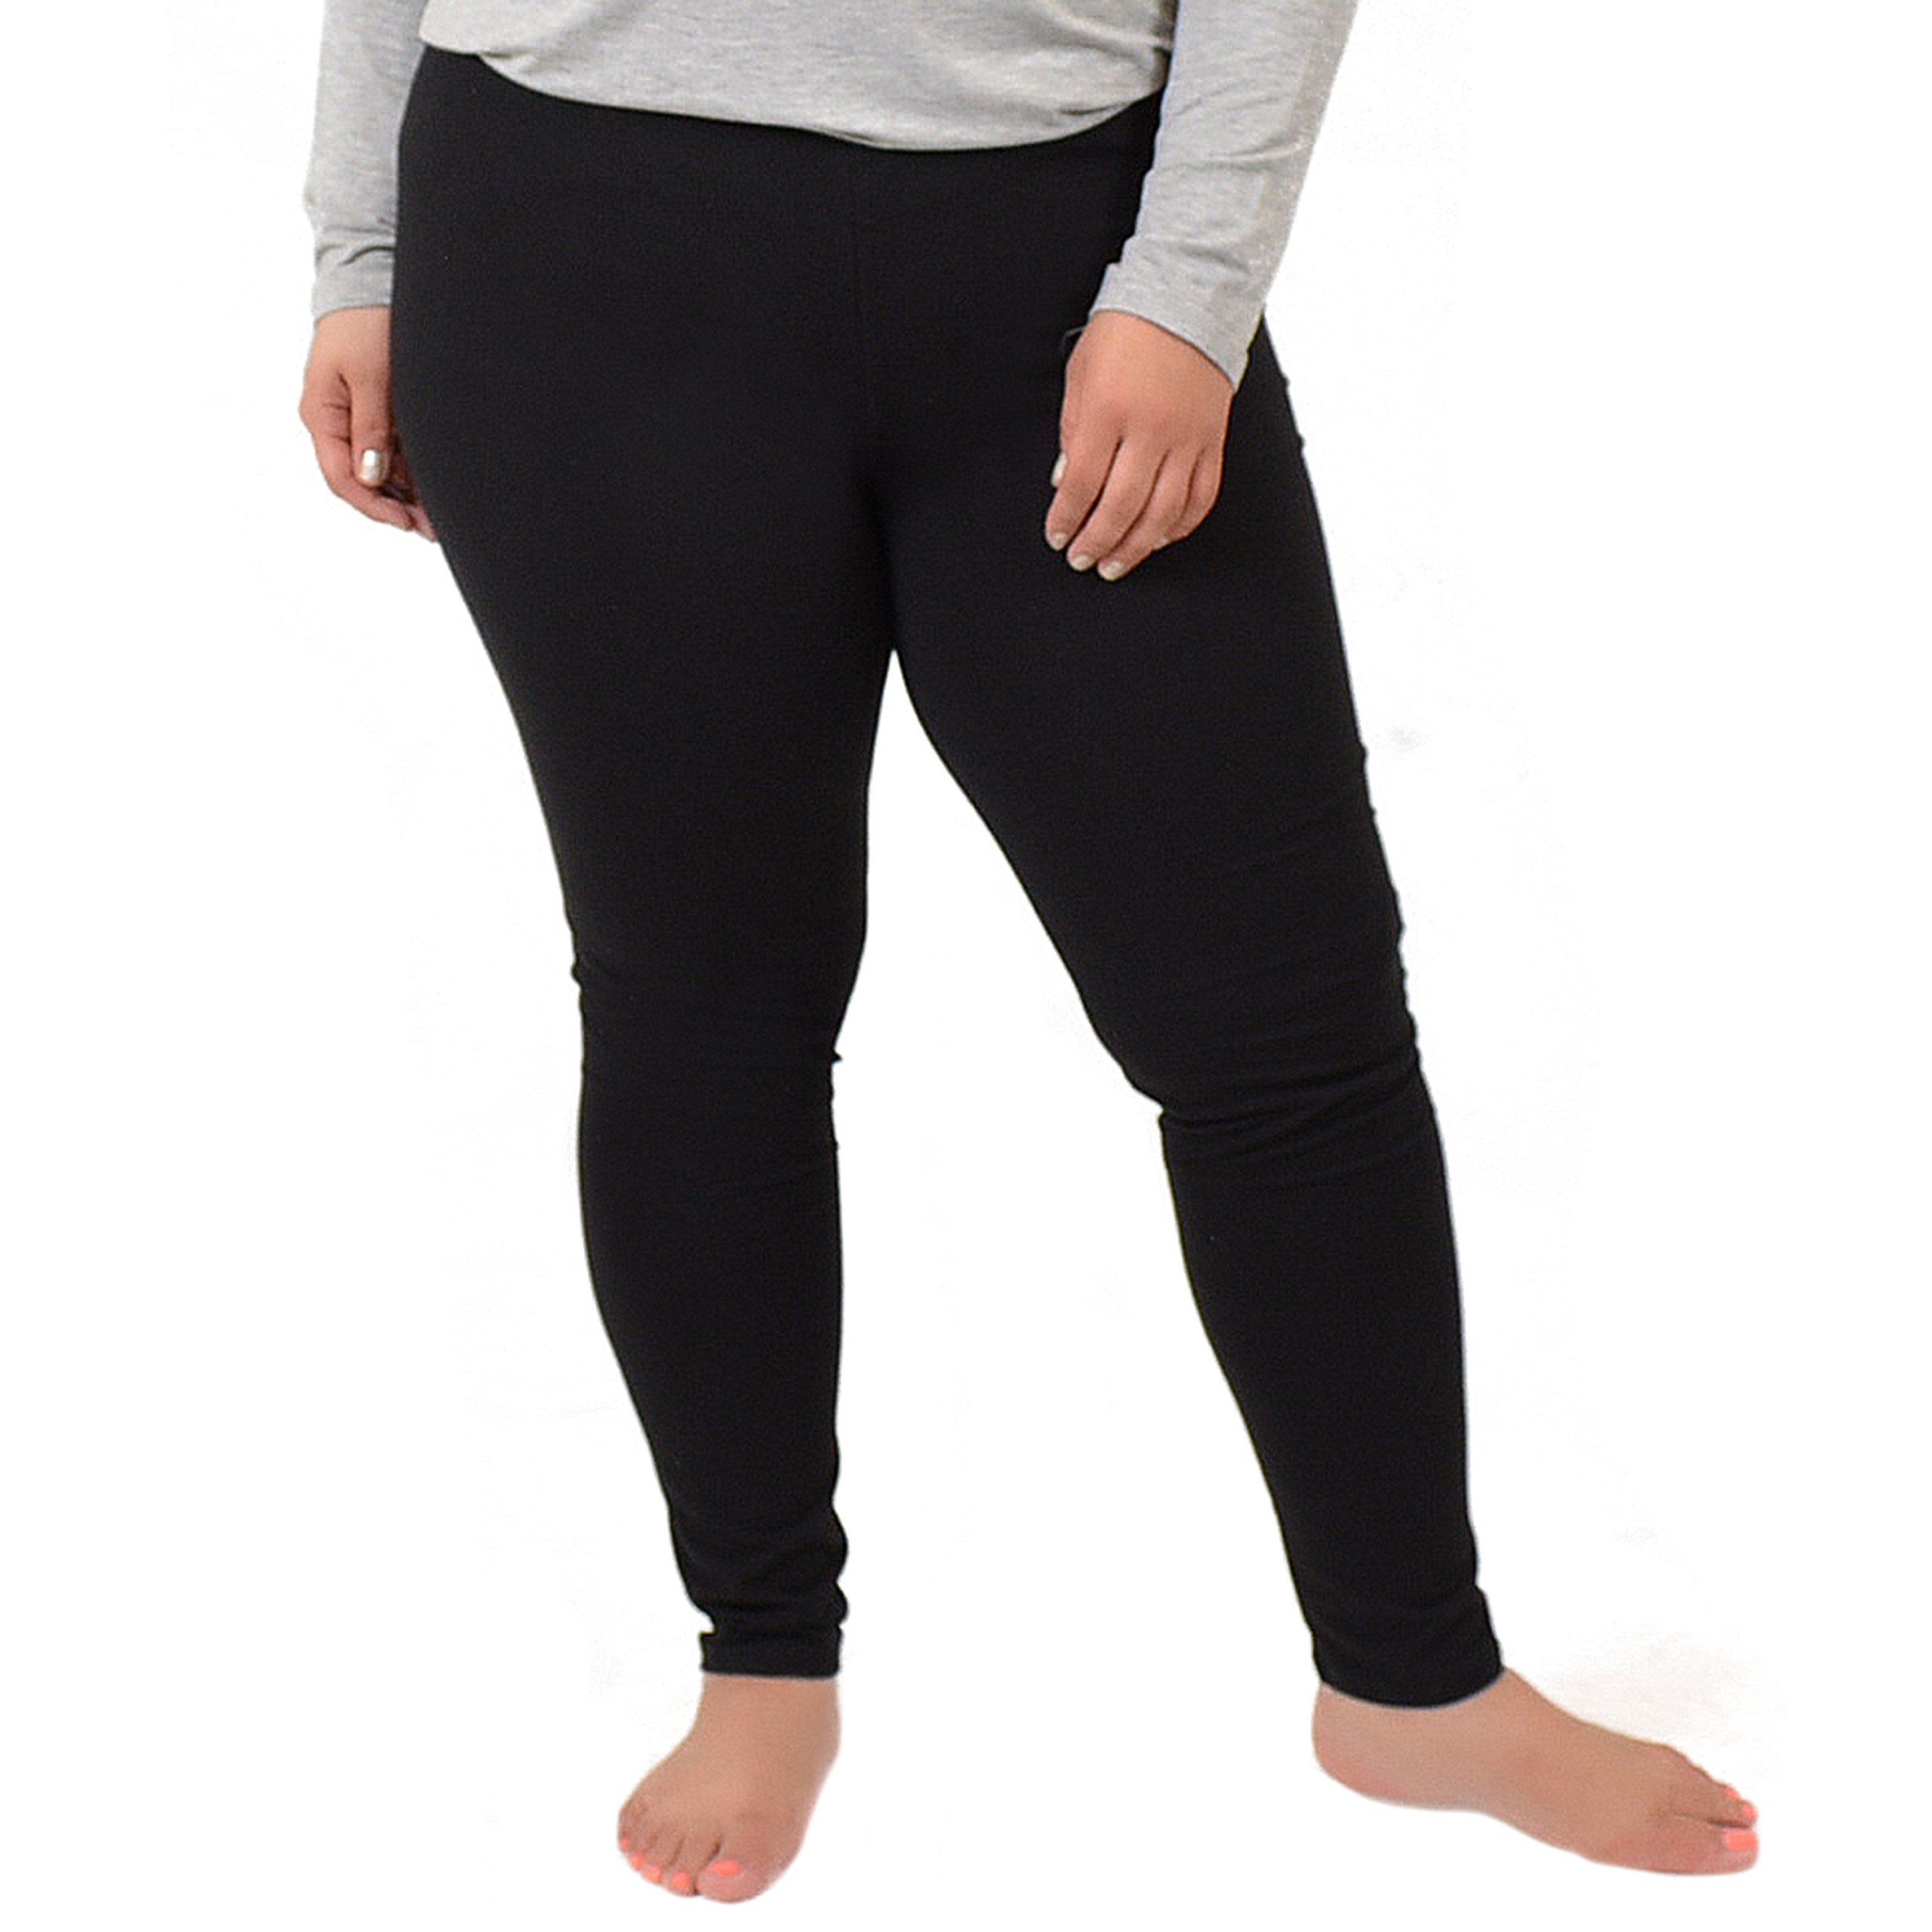 Stretch is Comfort Women's Cotton Plus Size Leggings Black 3XL